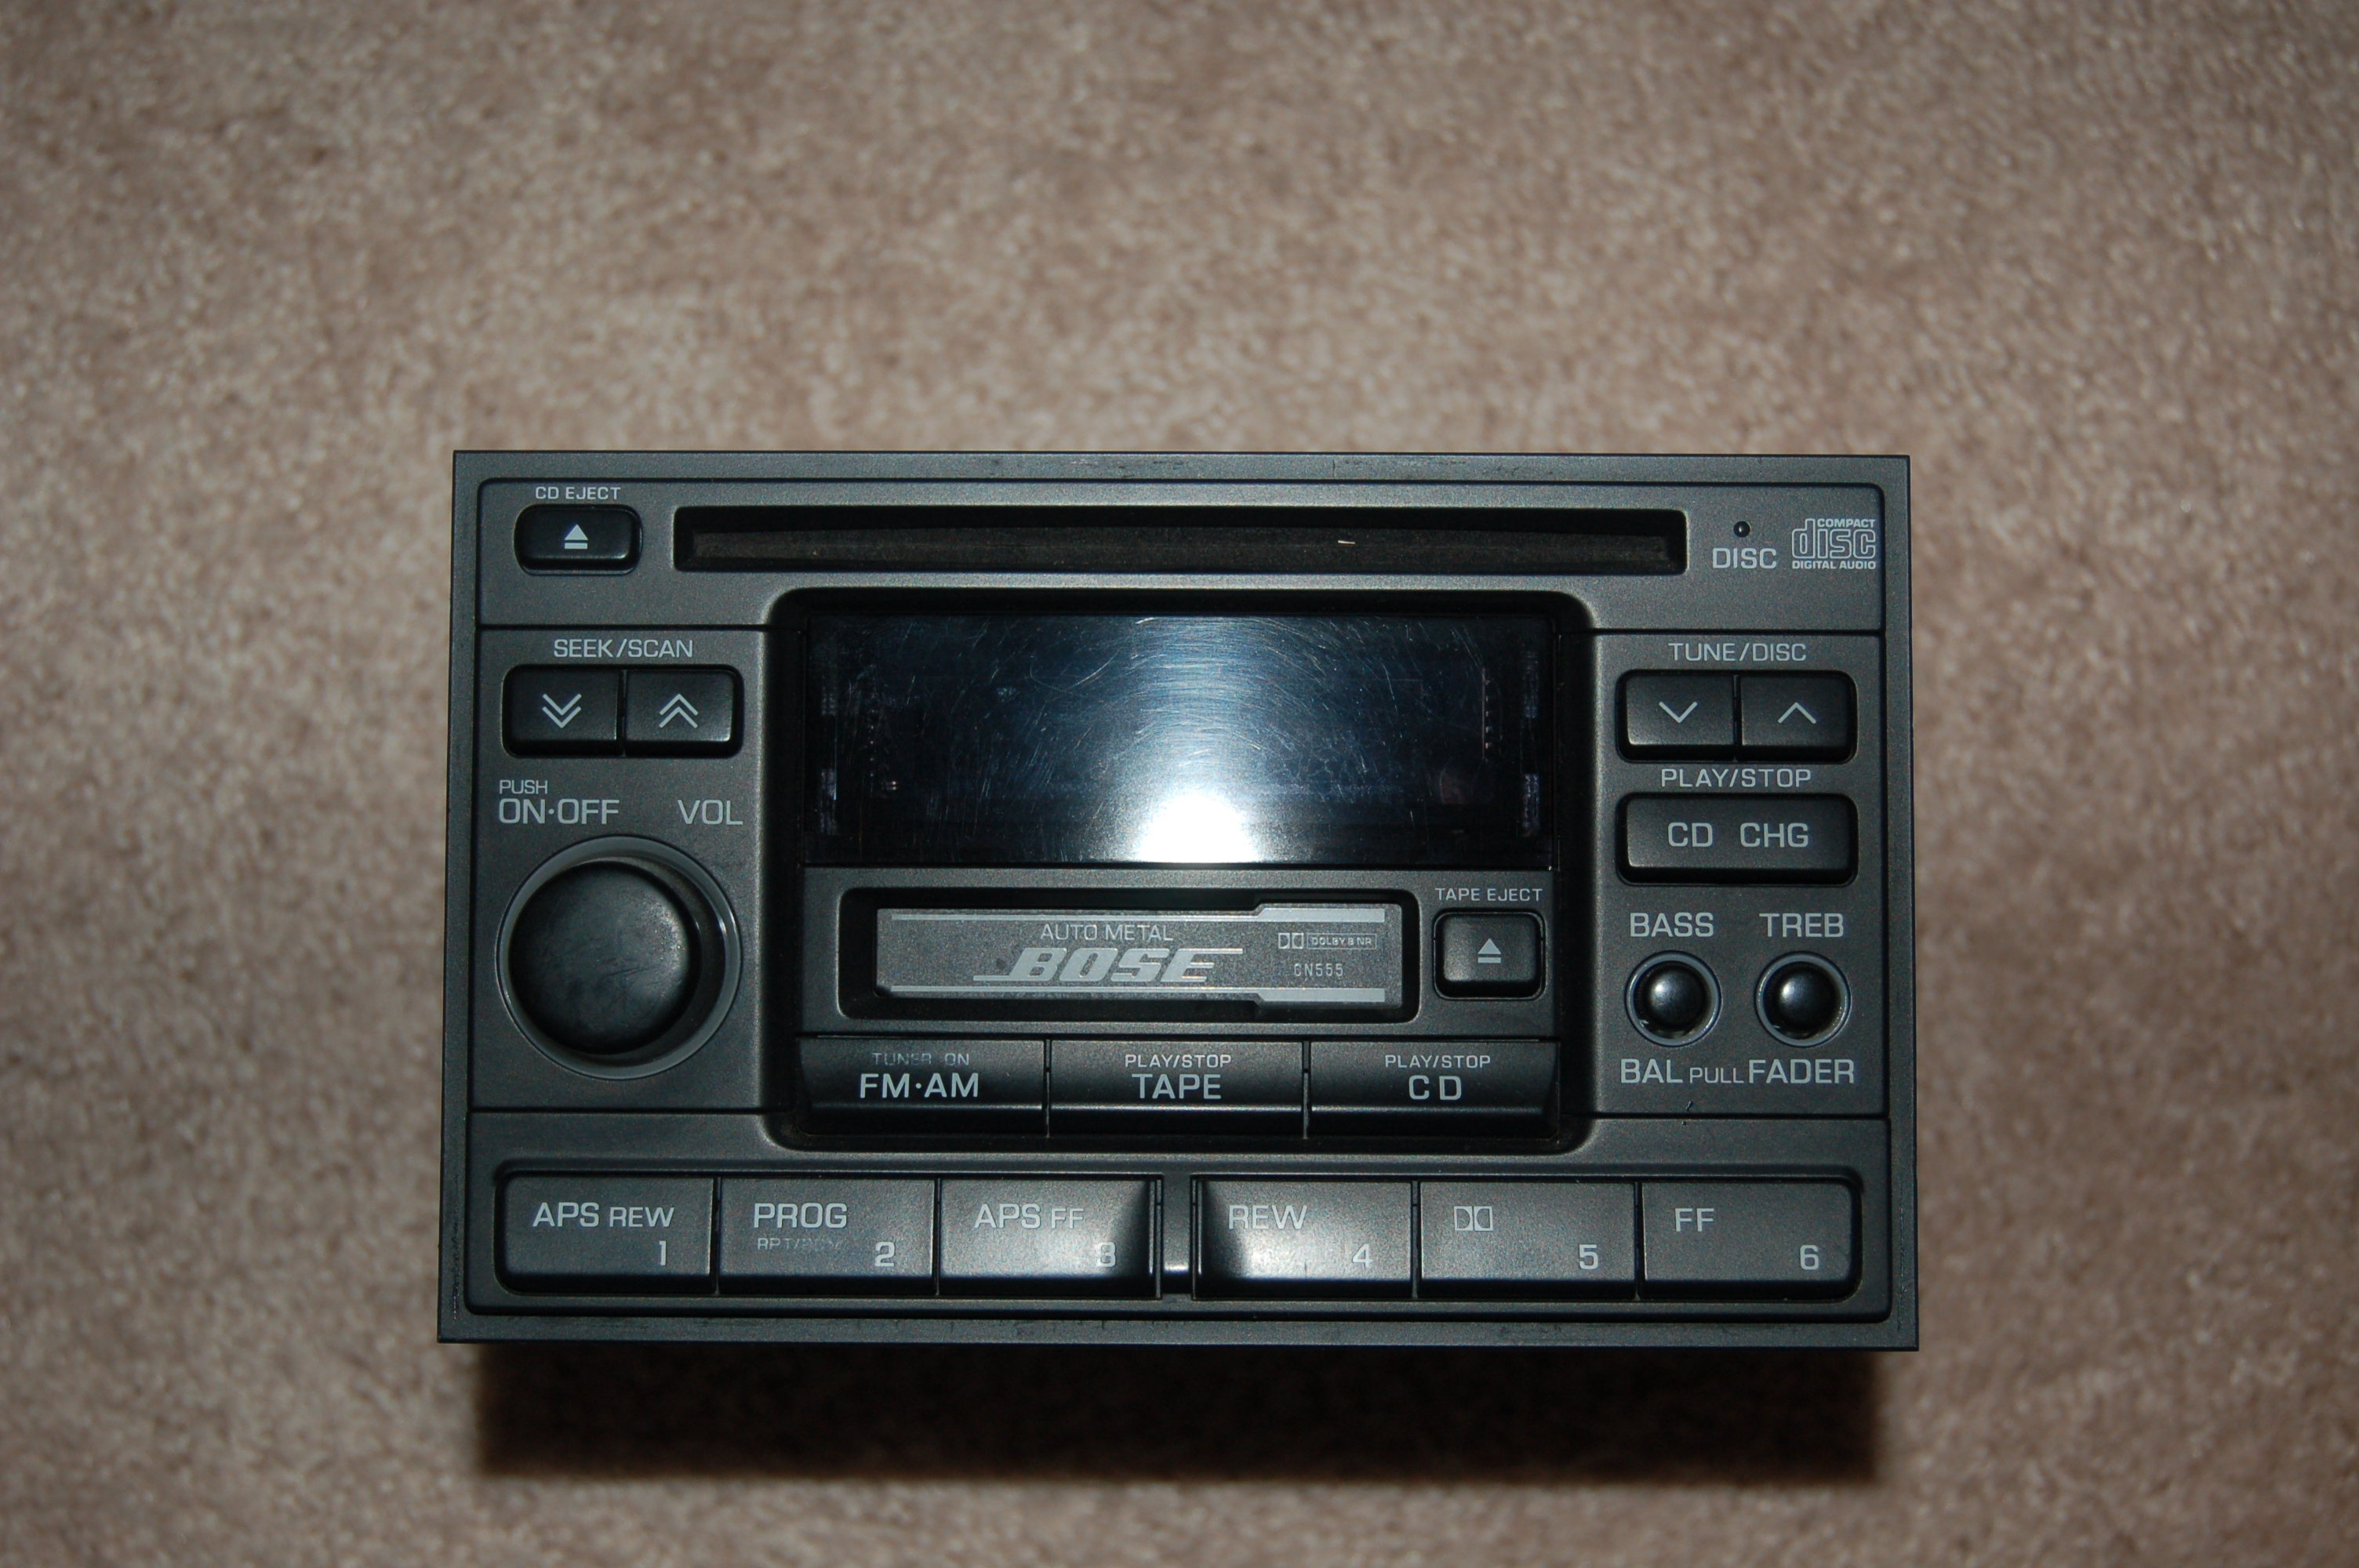 1997 Bose Double Din Stereo Radio